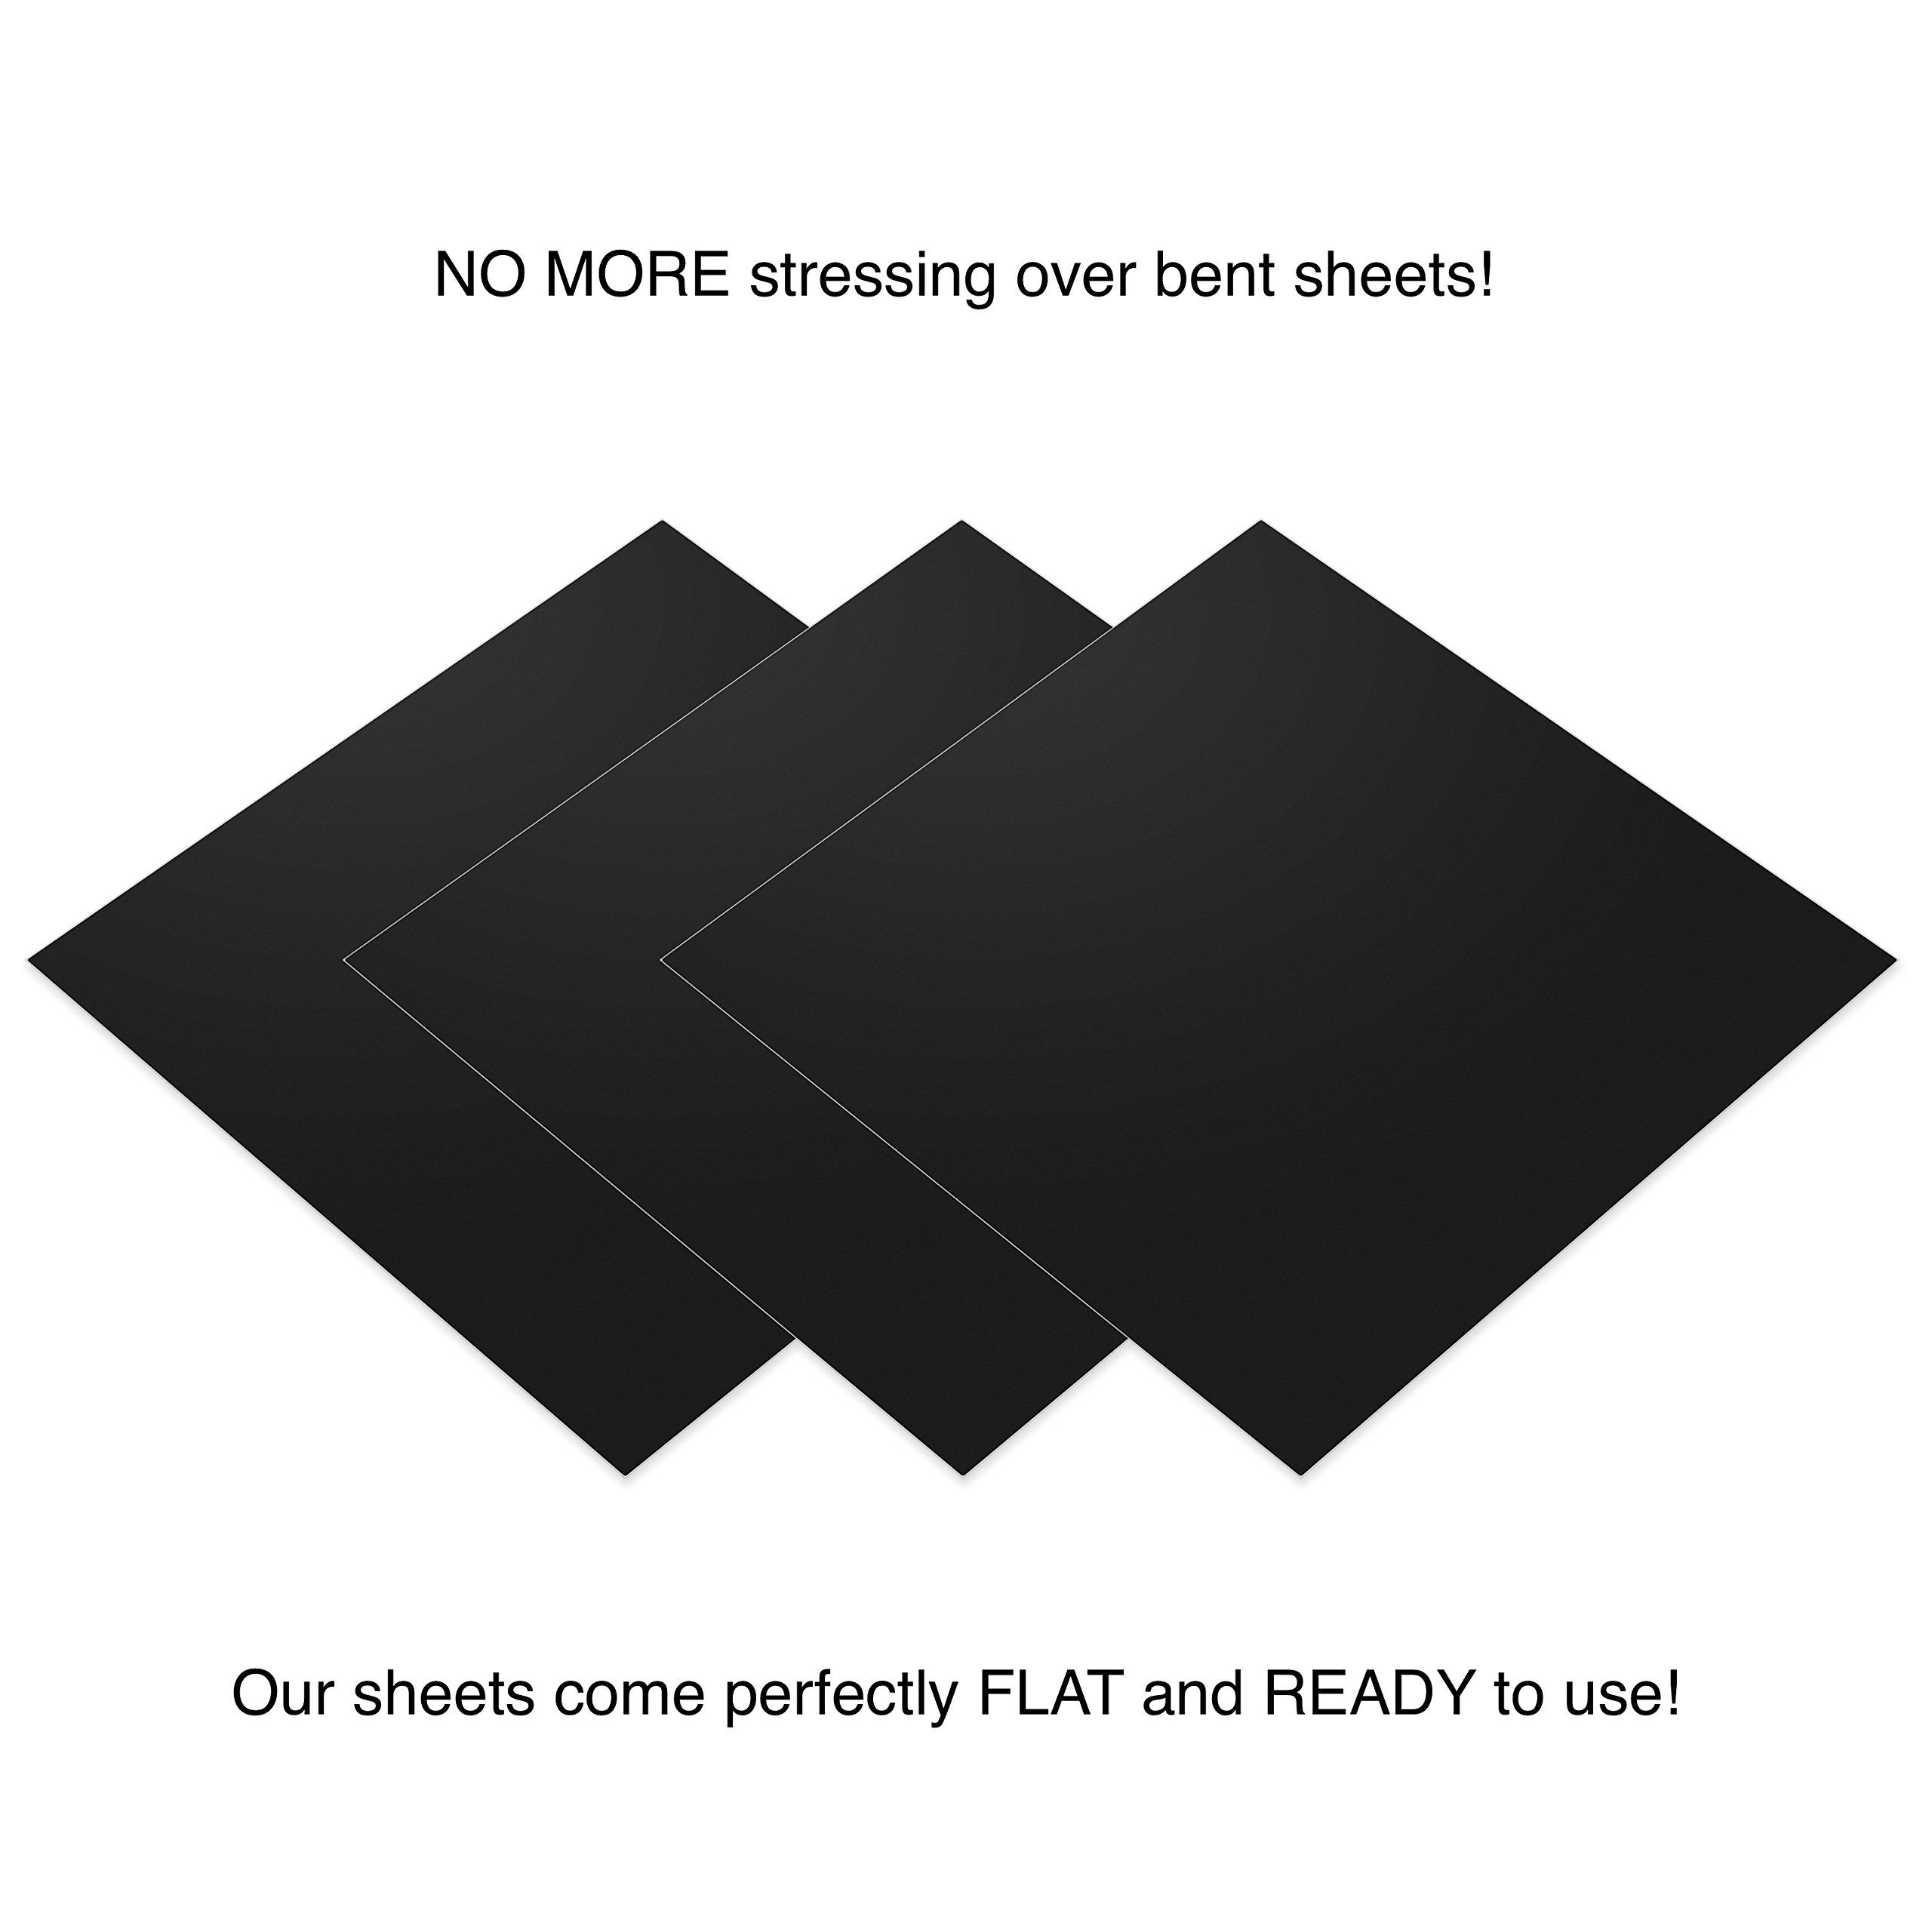 Permanent Matte Black Vinyl Sheets Better Than Vinyl Rolls Ez Craft Usa 12 X 12 40 Matte Adhesive Backed Sheets Wo Vinyl Rolls Black Vinyl Vinyl Sheets